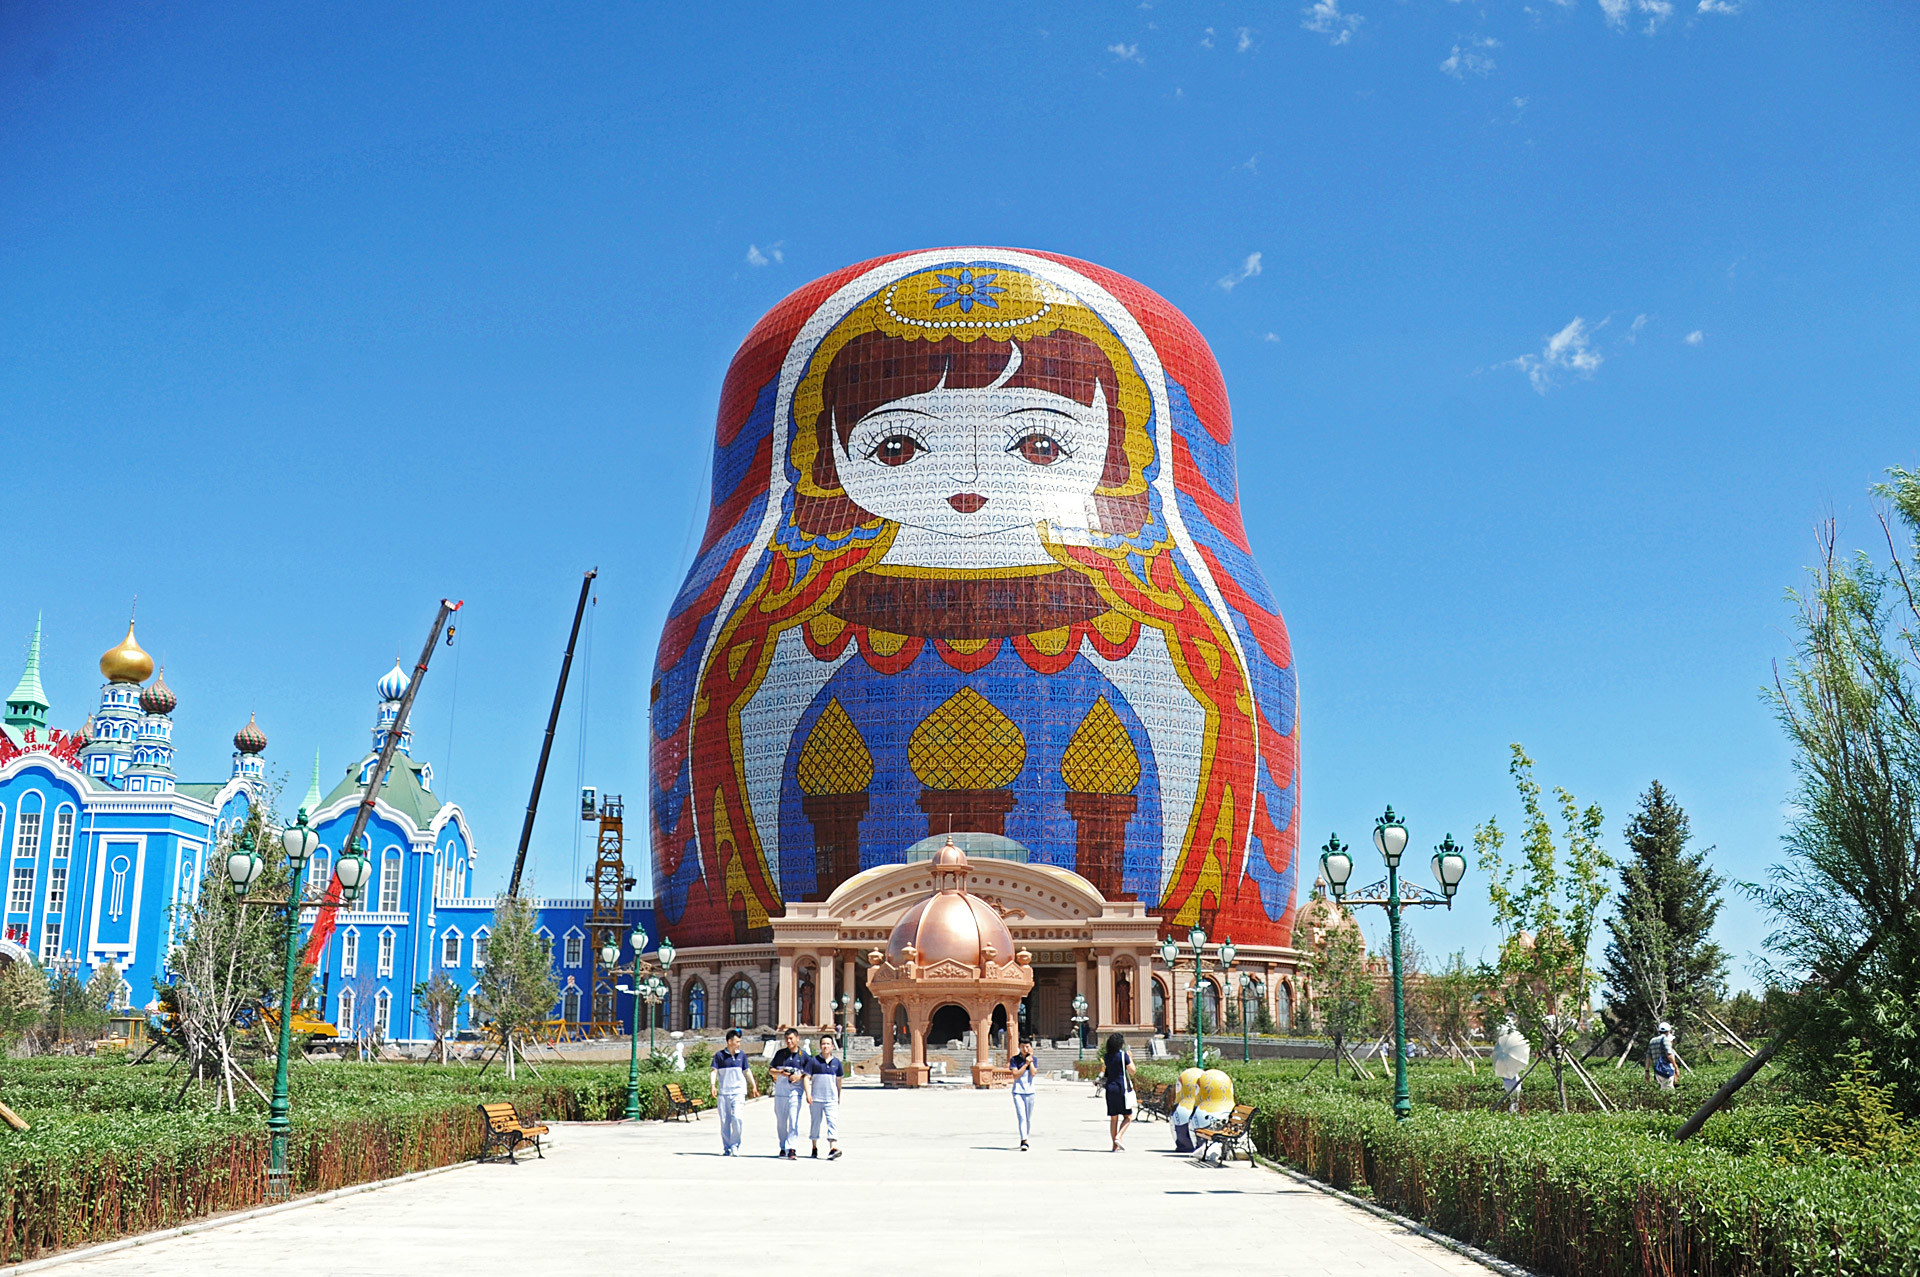 7 Replicas Of Russian Landmarks That Look Really Weird But